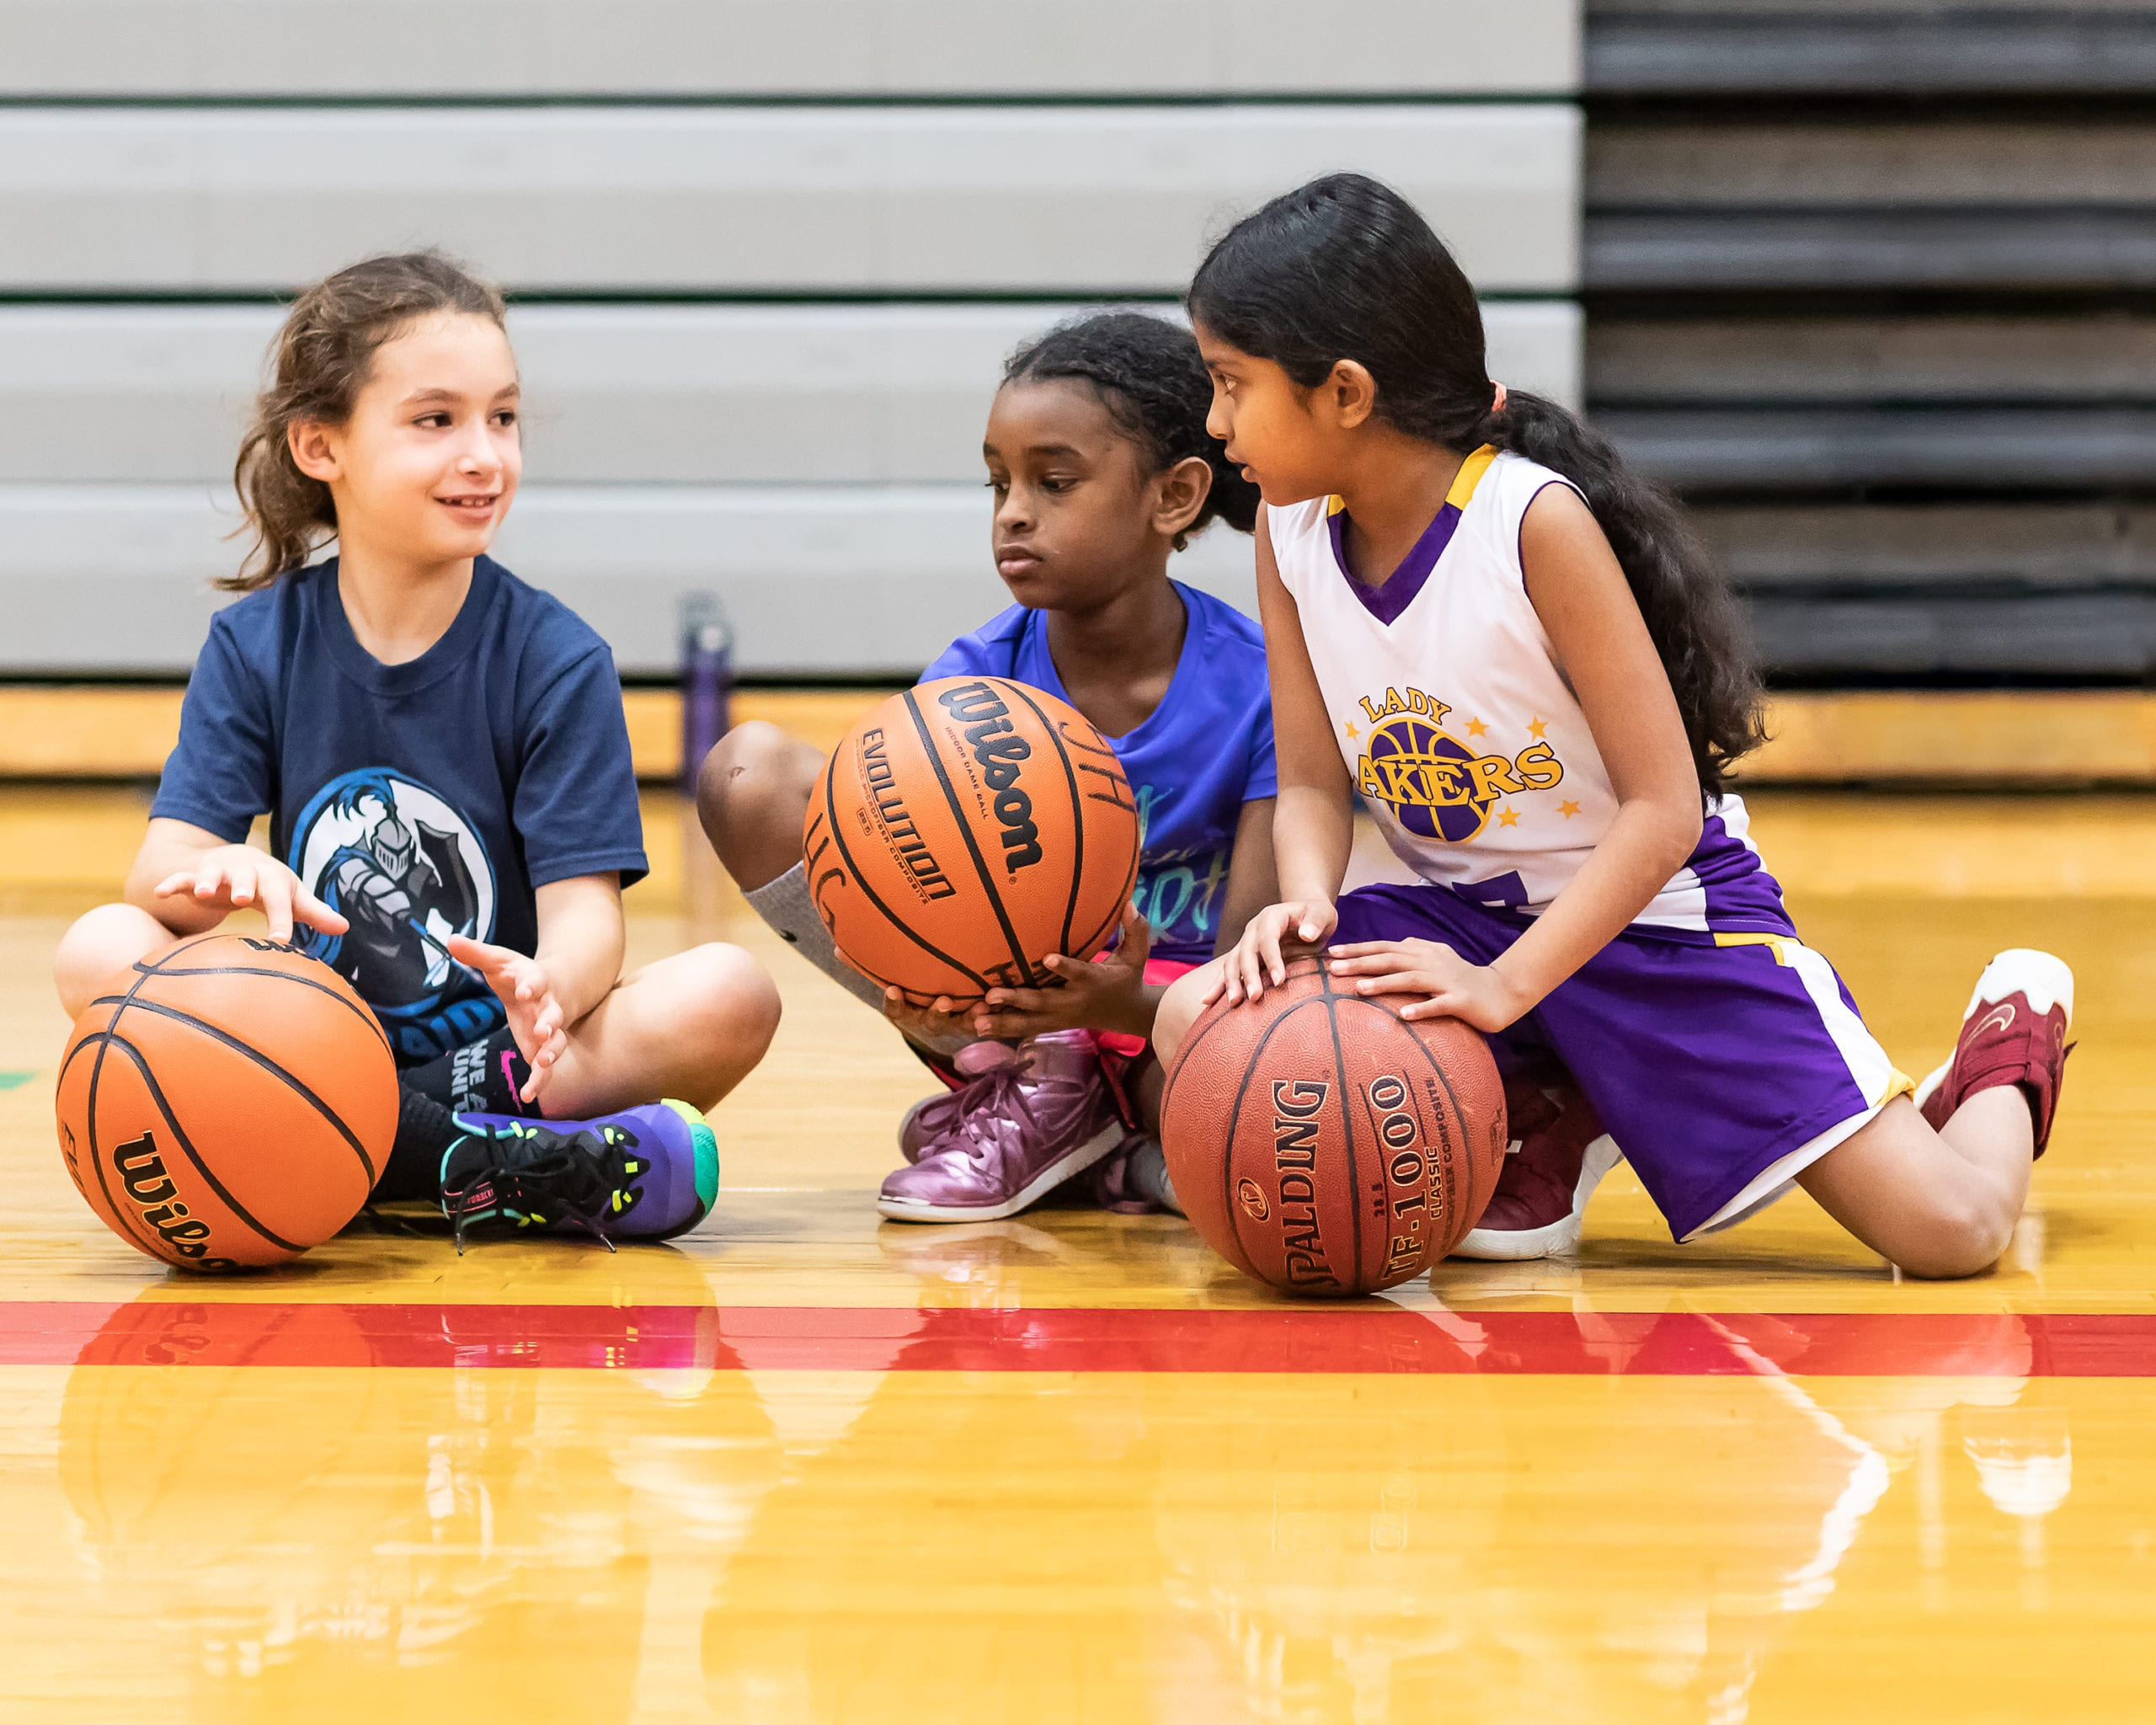 Youth Athletics Sports Camps